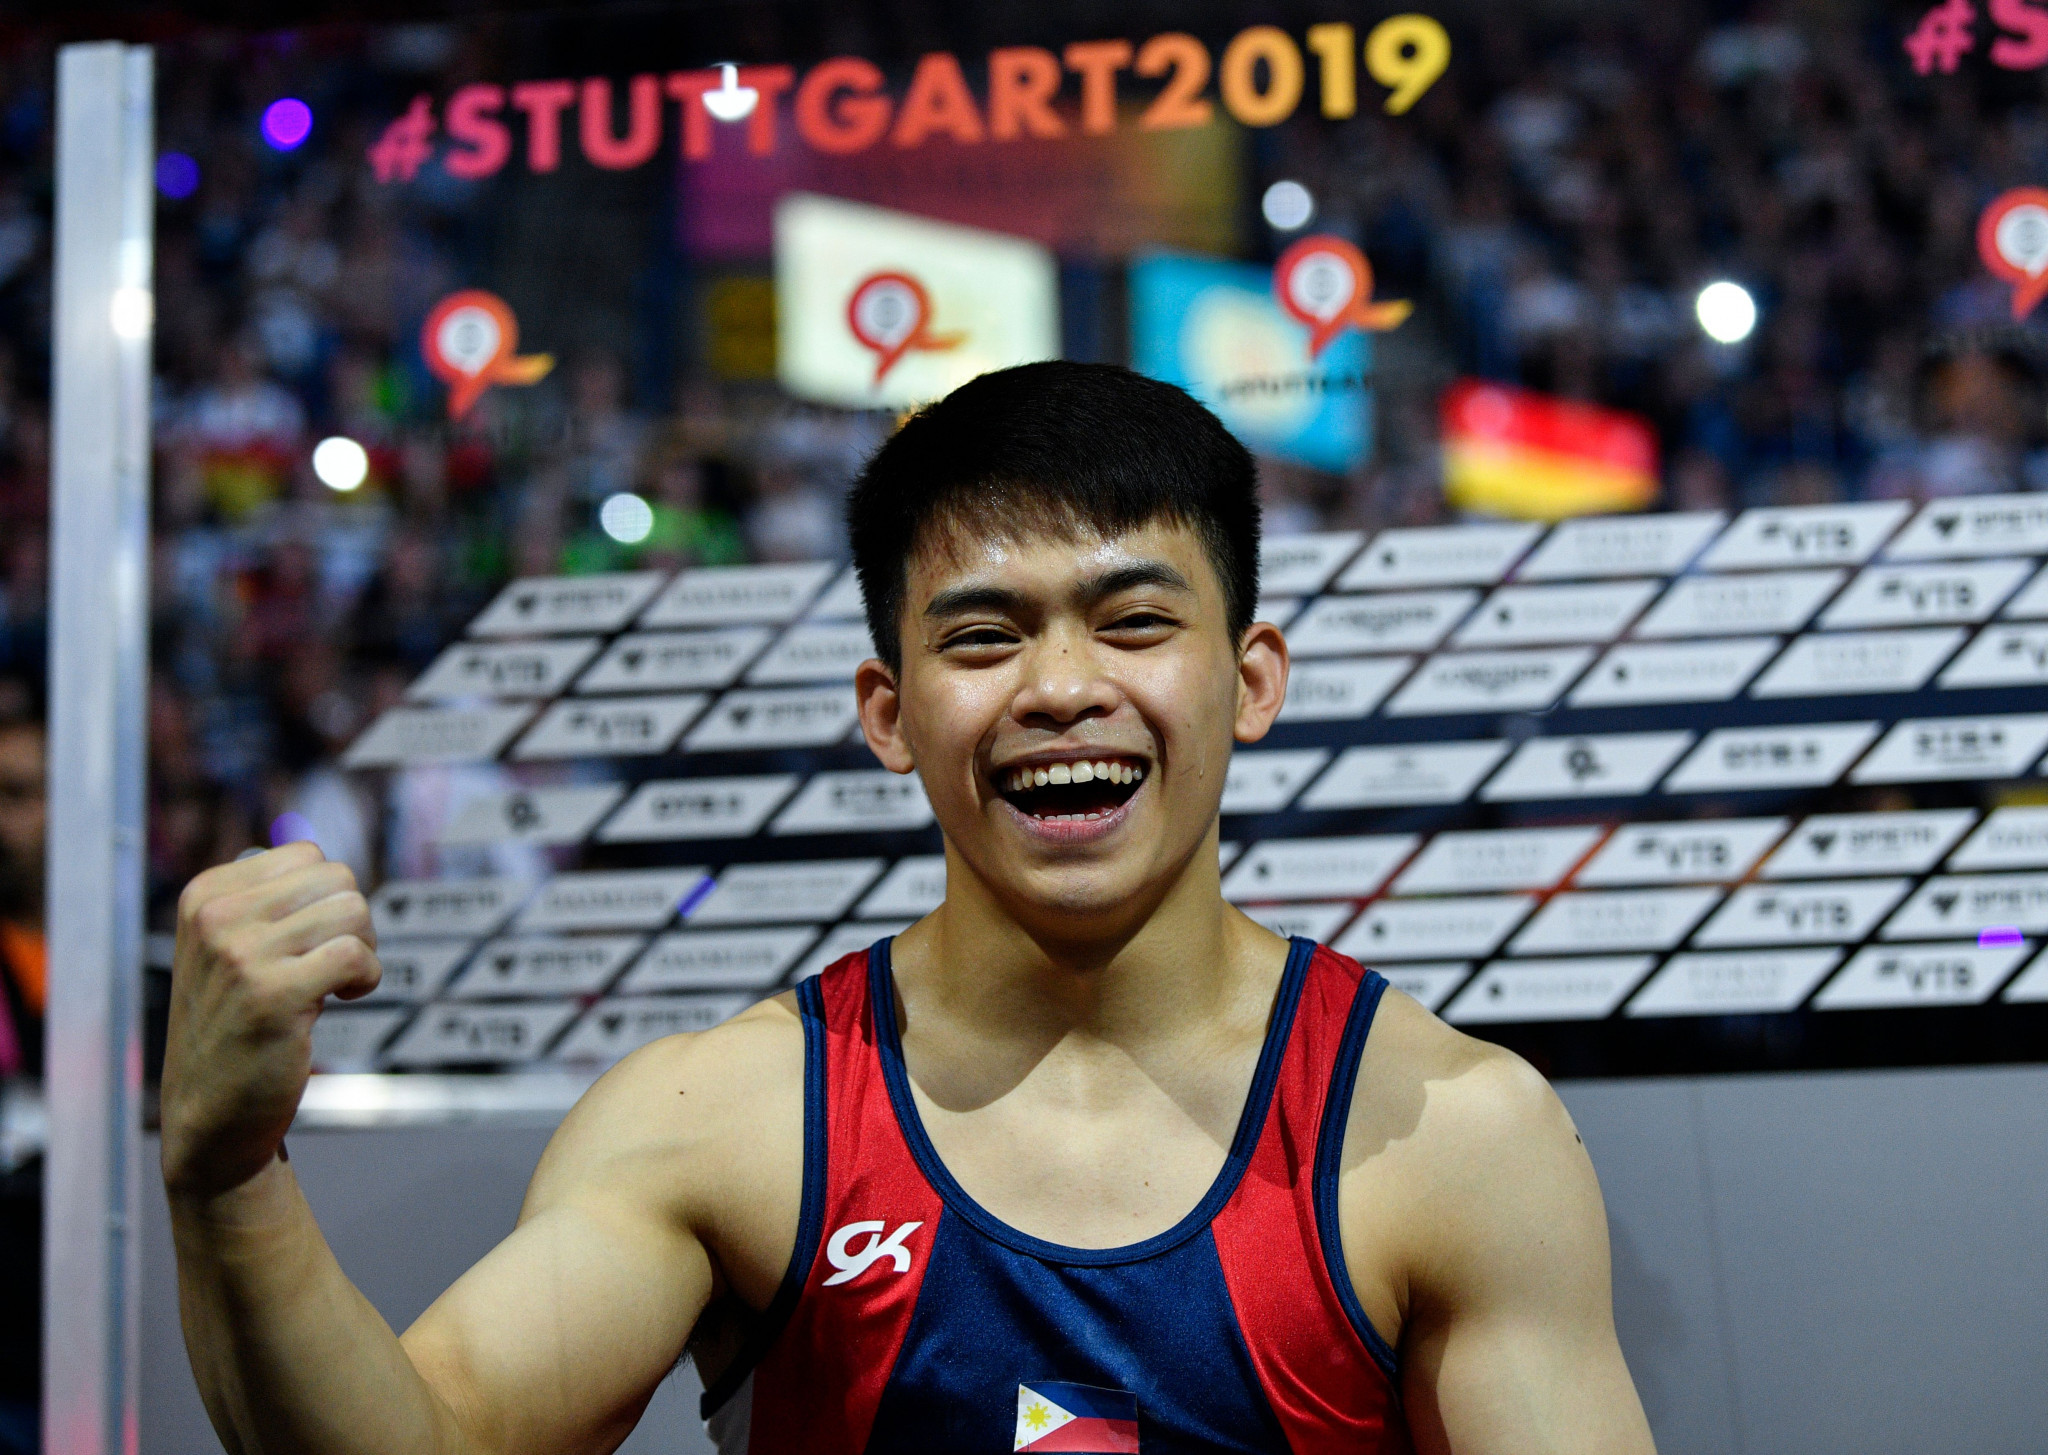 Carlos Yulo became the first Filipino to earn a title at the World Gymnastics Championships after winning the floor event last year ©Getty Images